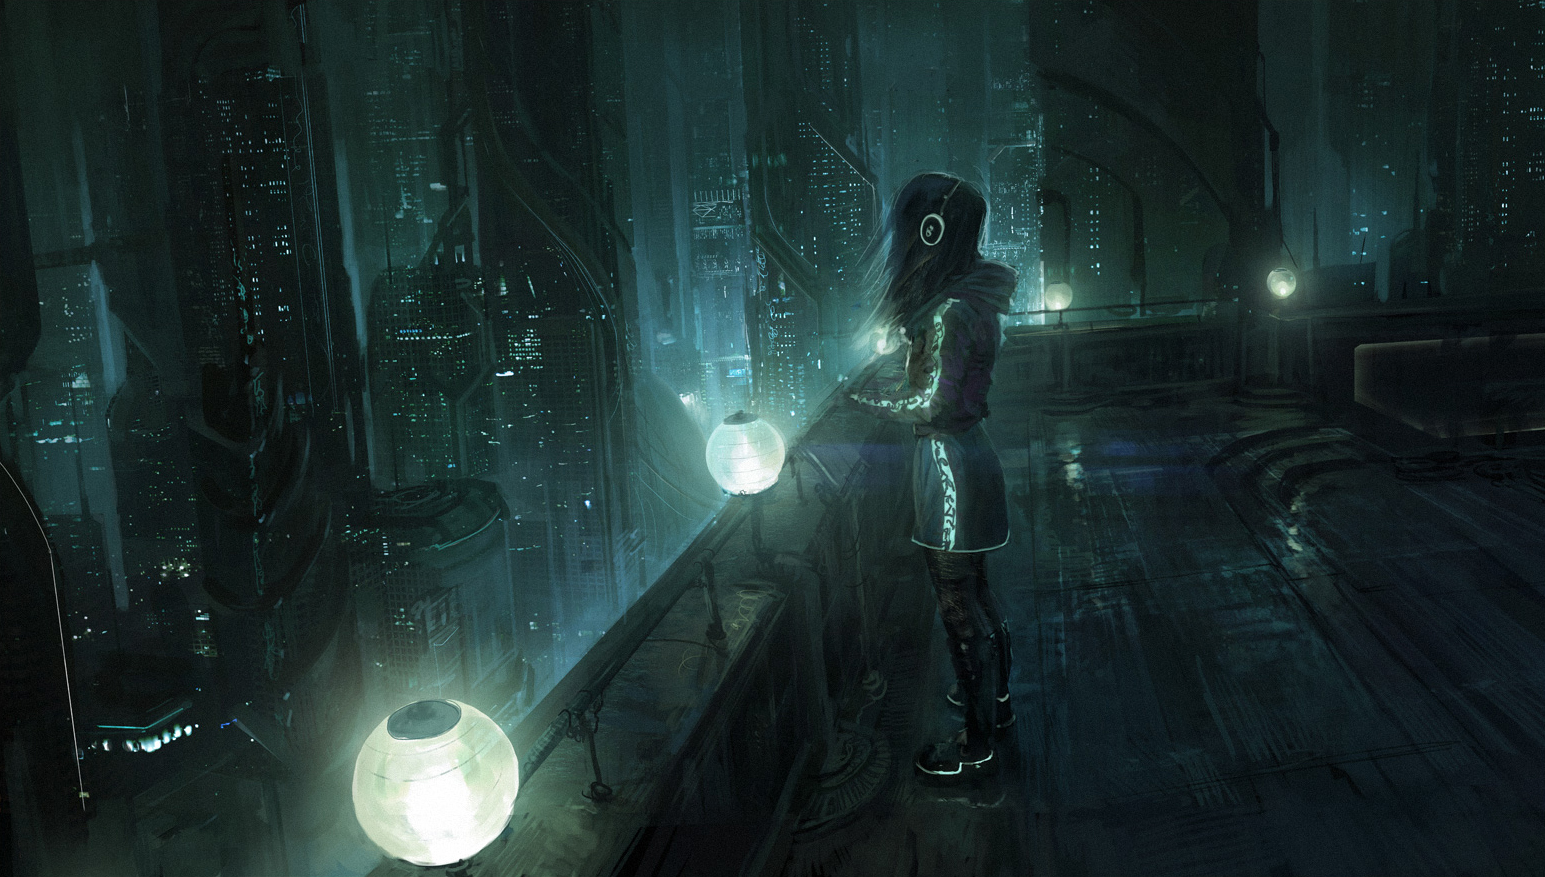 1545x877 - Sci Fi City Wallpapers 4